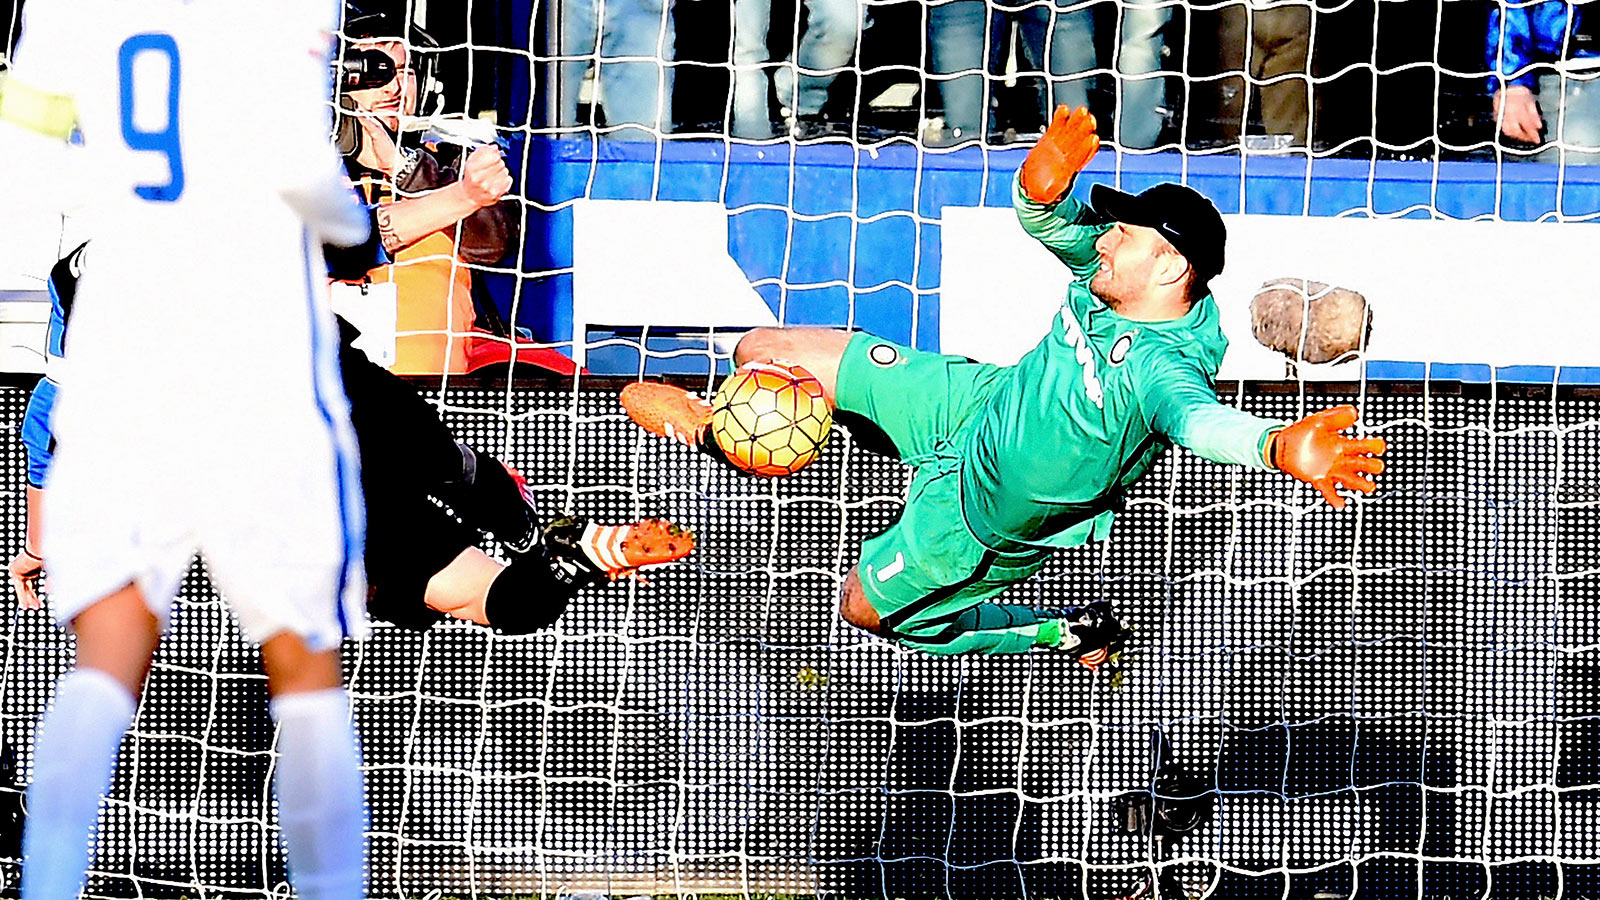 Handanovic miracle save helps Inter Milan draw at Atalanta